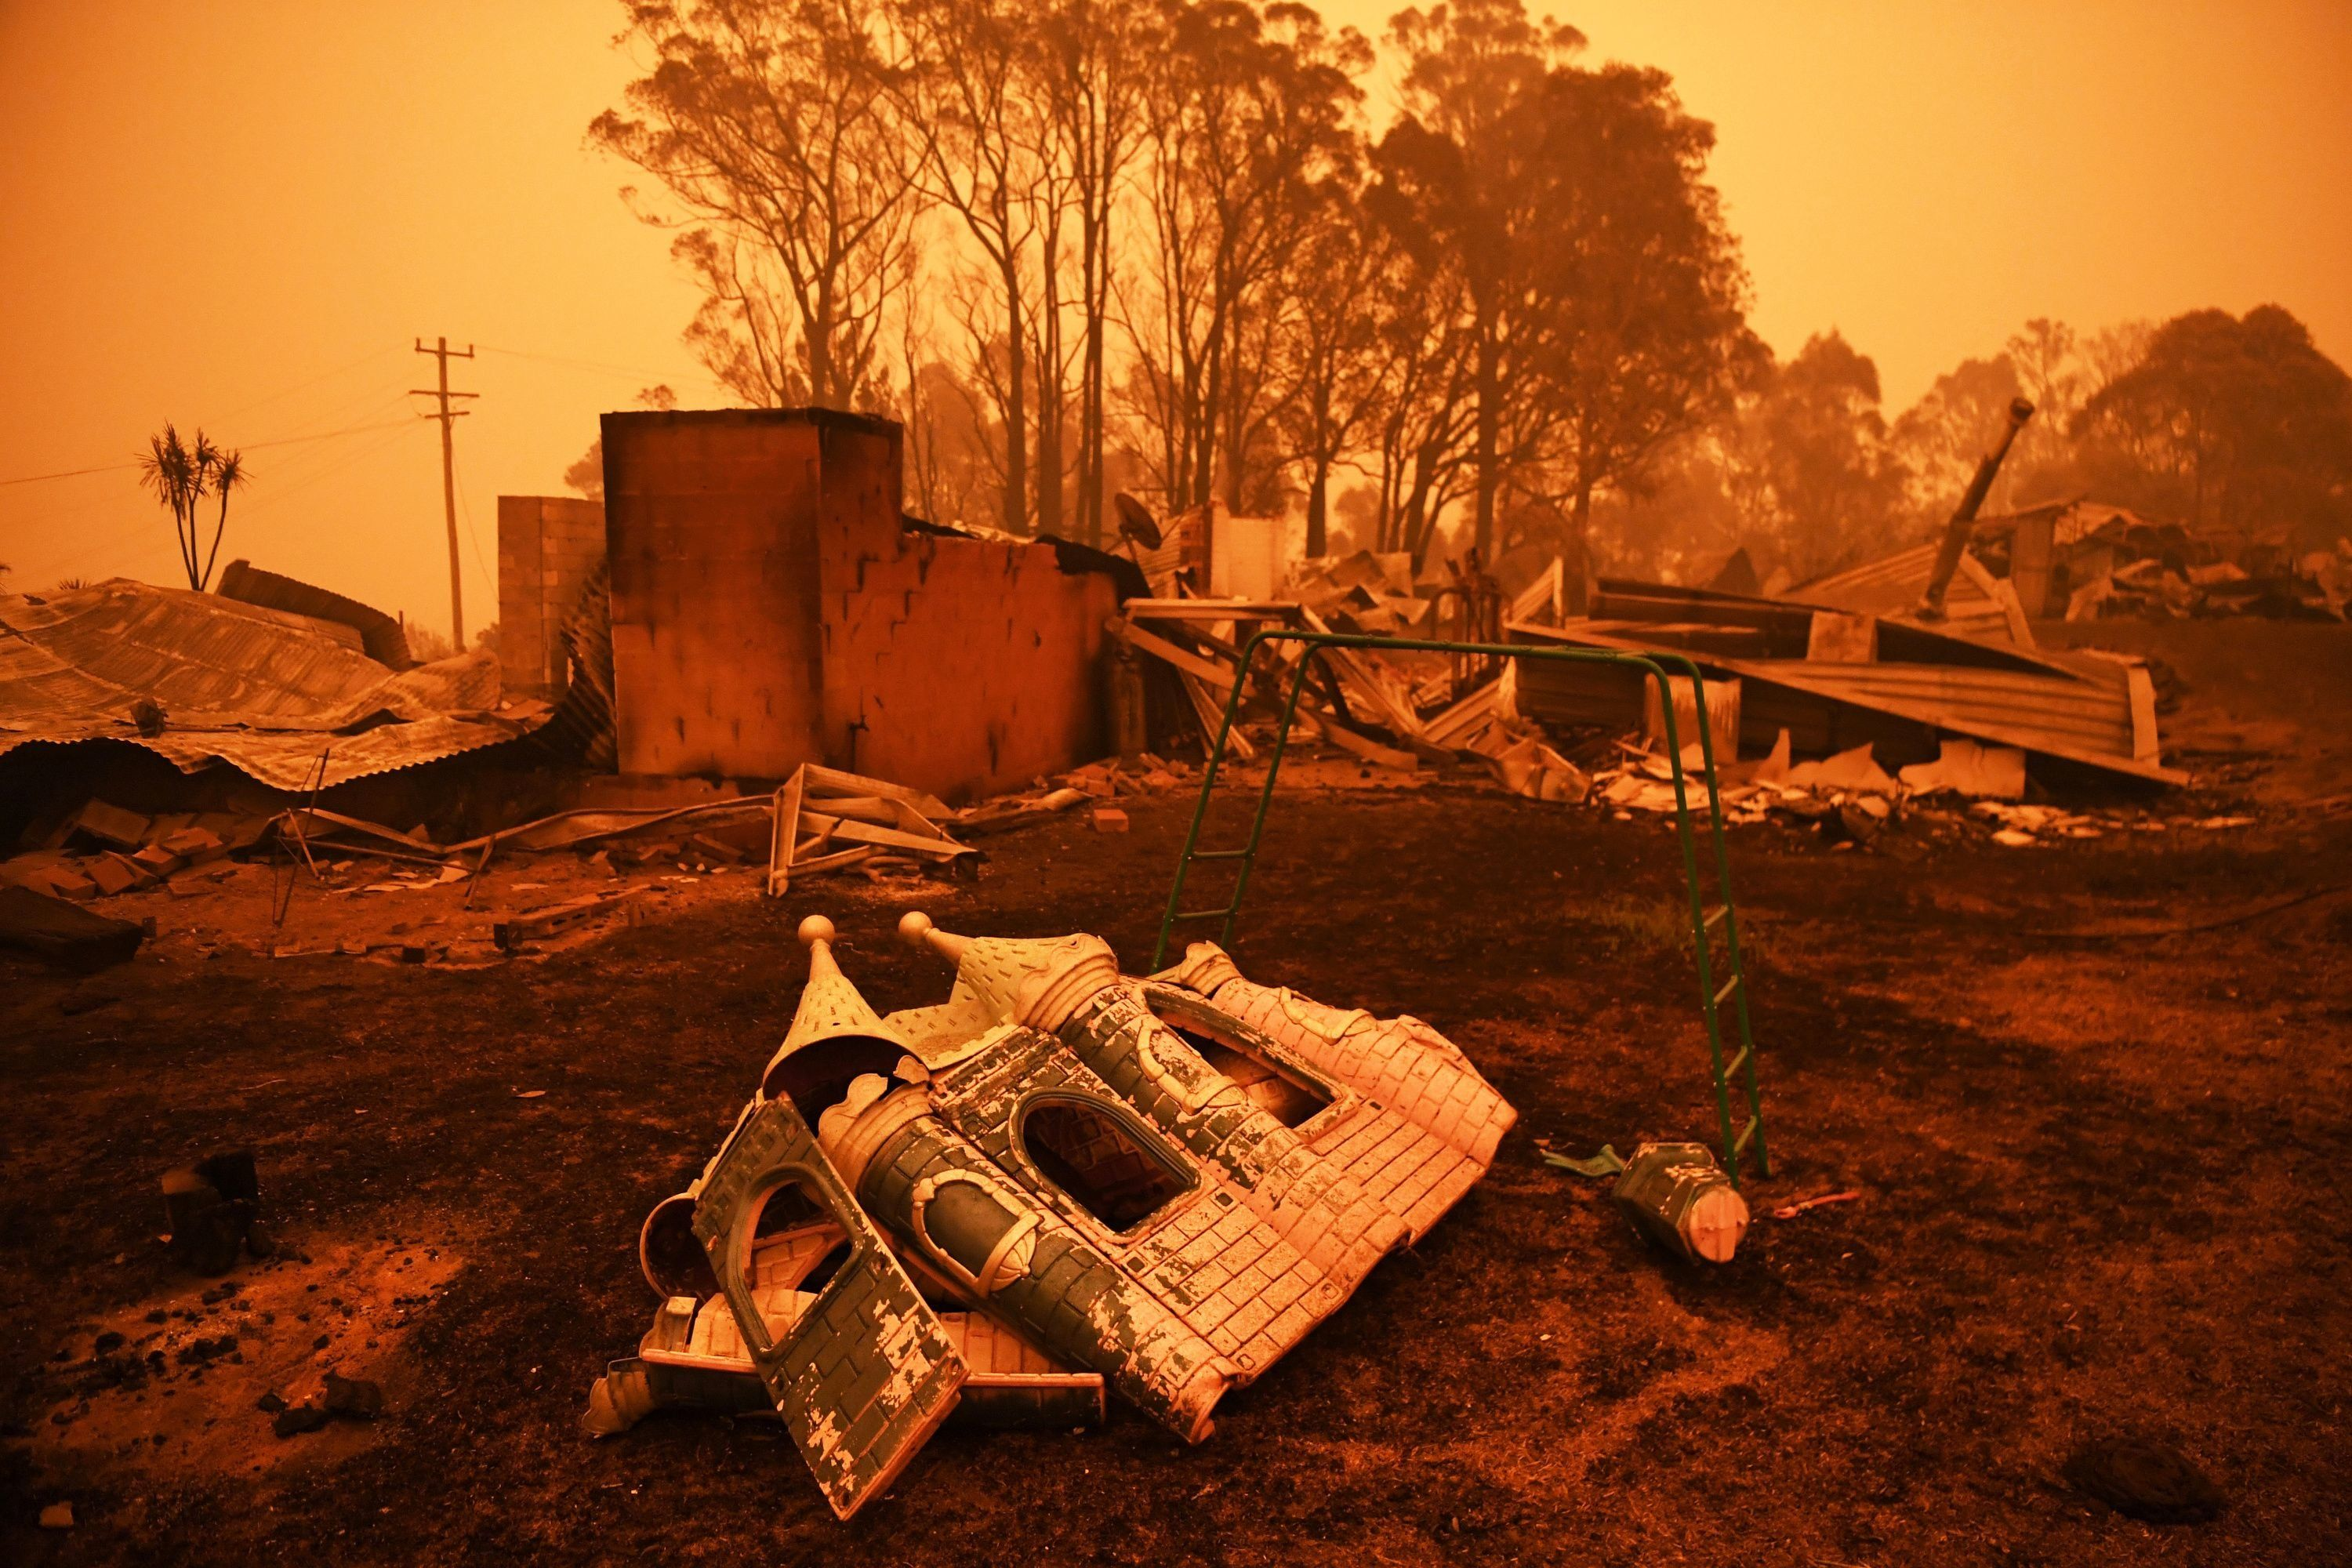 Hard Numbers: There's a single blaze in Australia the size of Manhattan